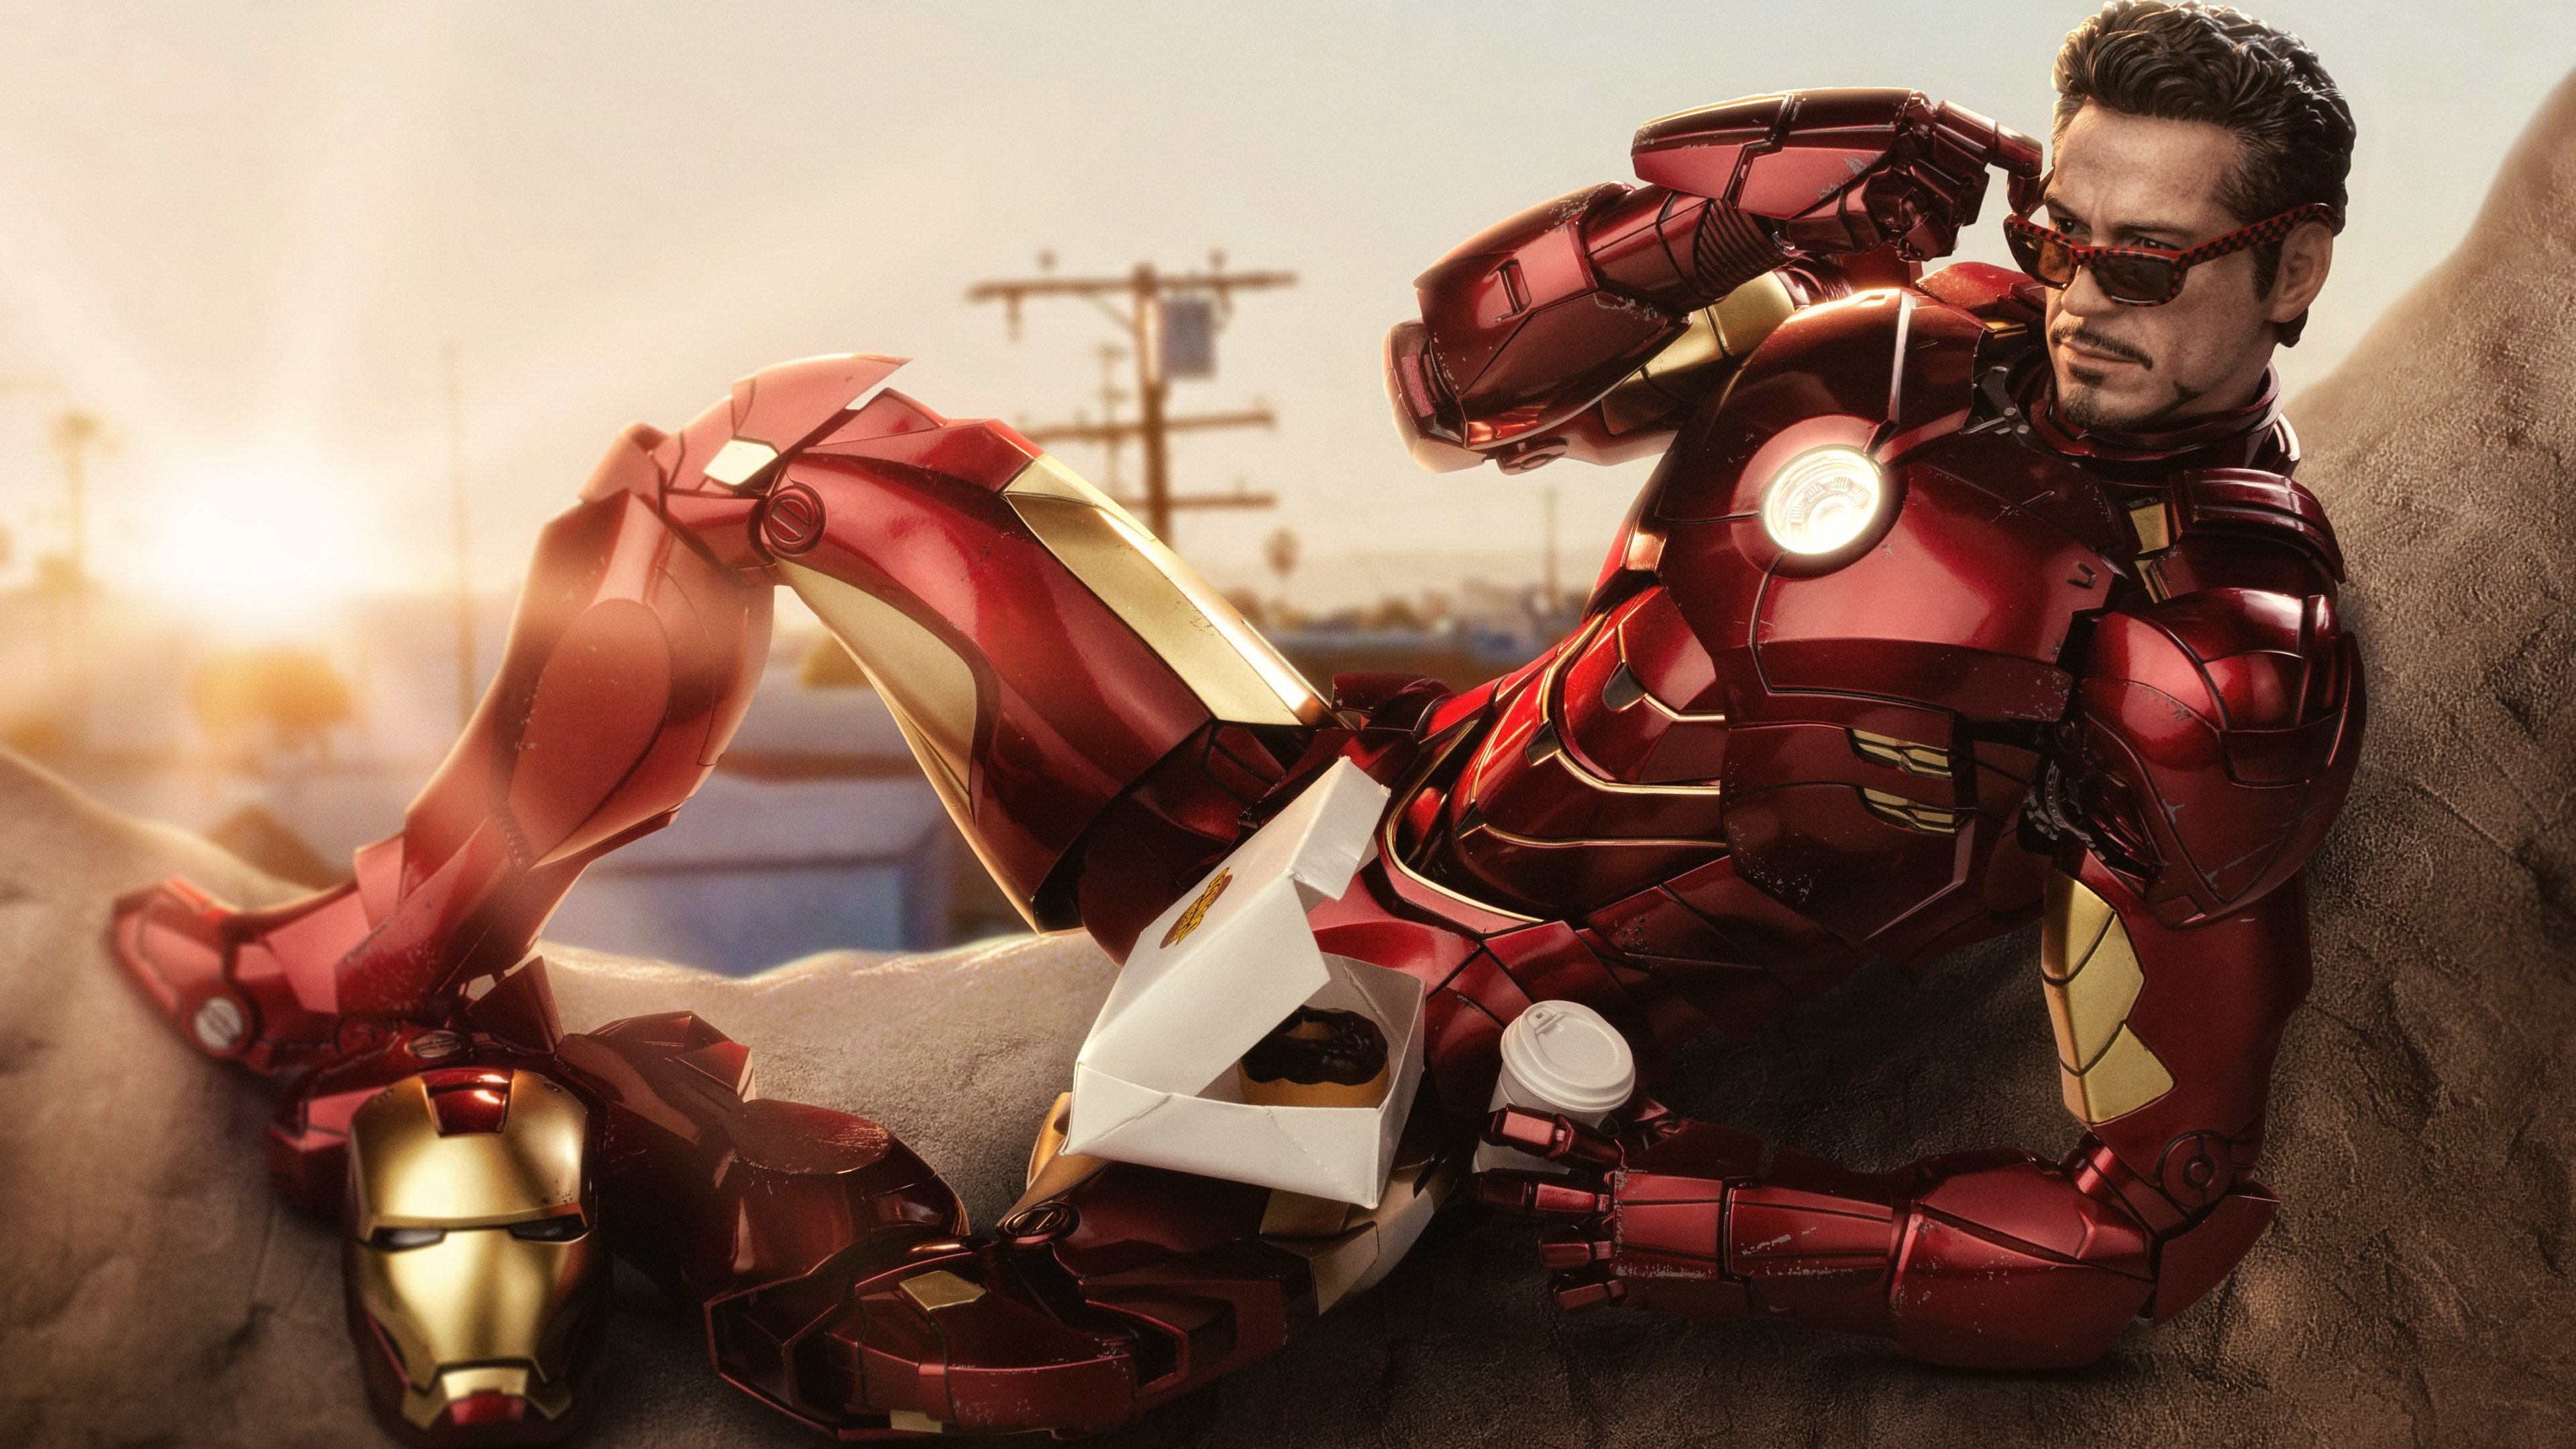 iron man eating dunkin donuts with coffee 1539978746 - Iron Man Eating Dunkin Donuts With Coffee - superheroes wallpapers, iron man wallpapers, hd-wallpapers, 5k wallpapers, 4k-wallpapers